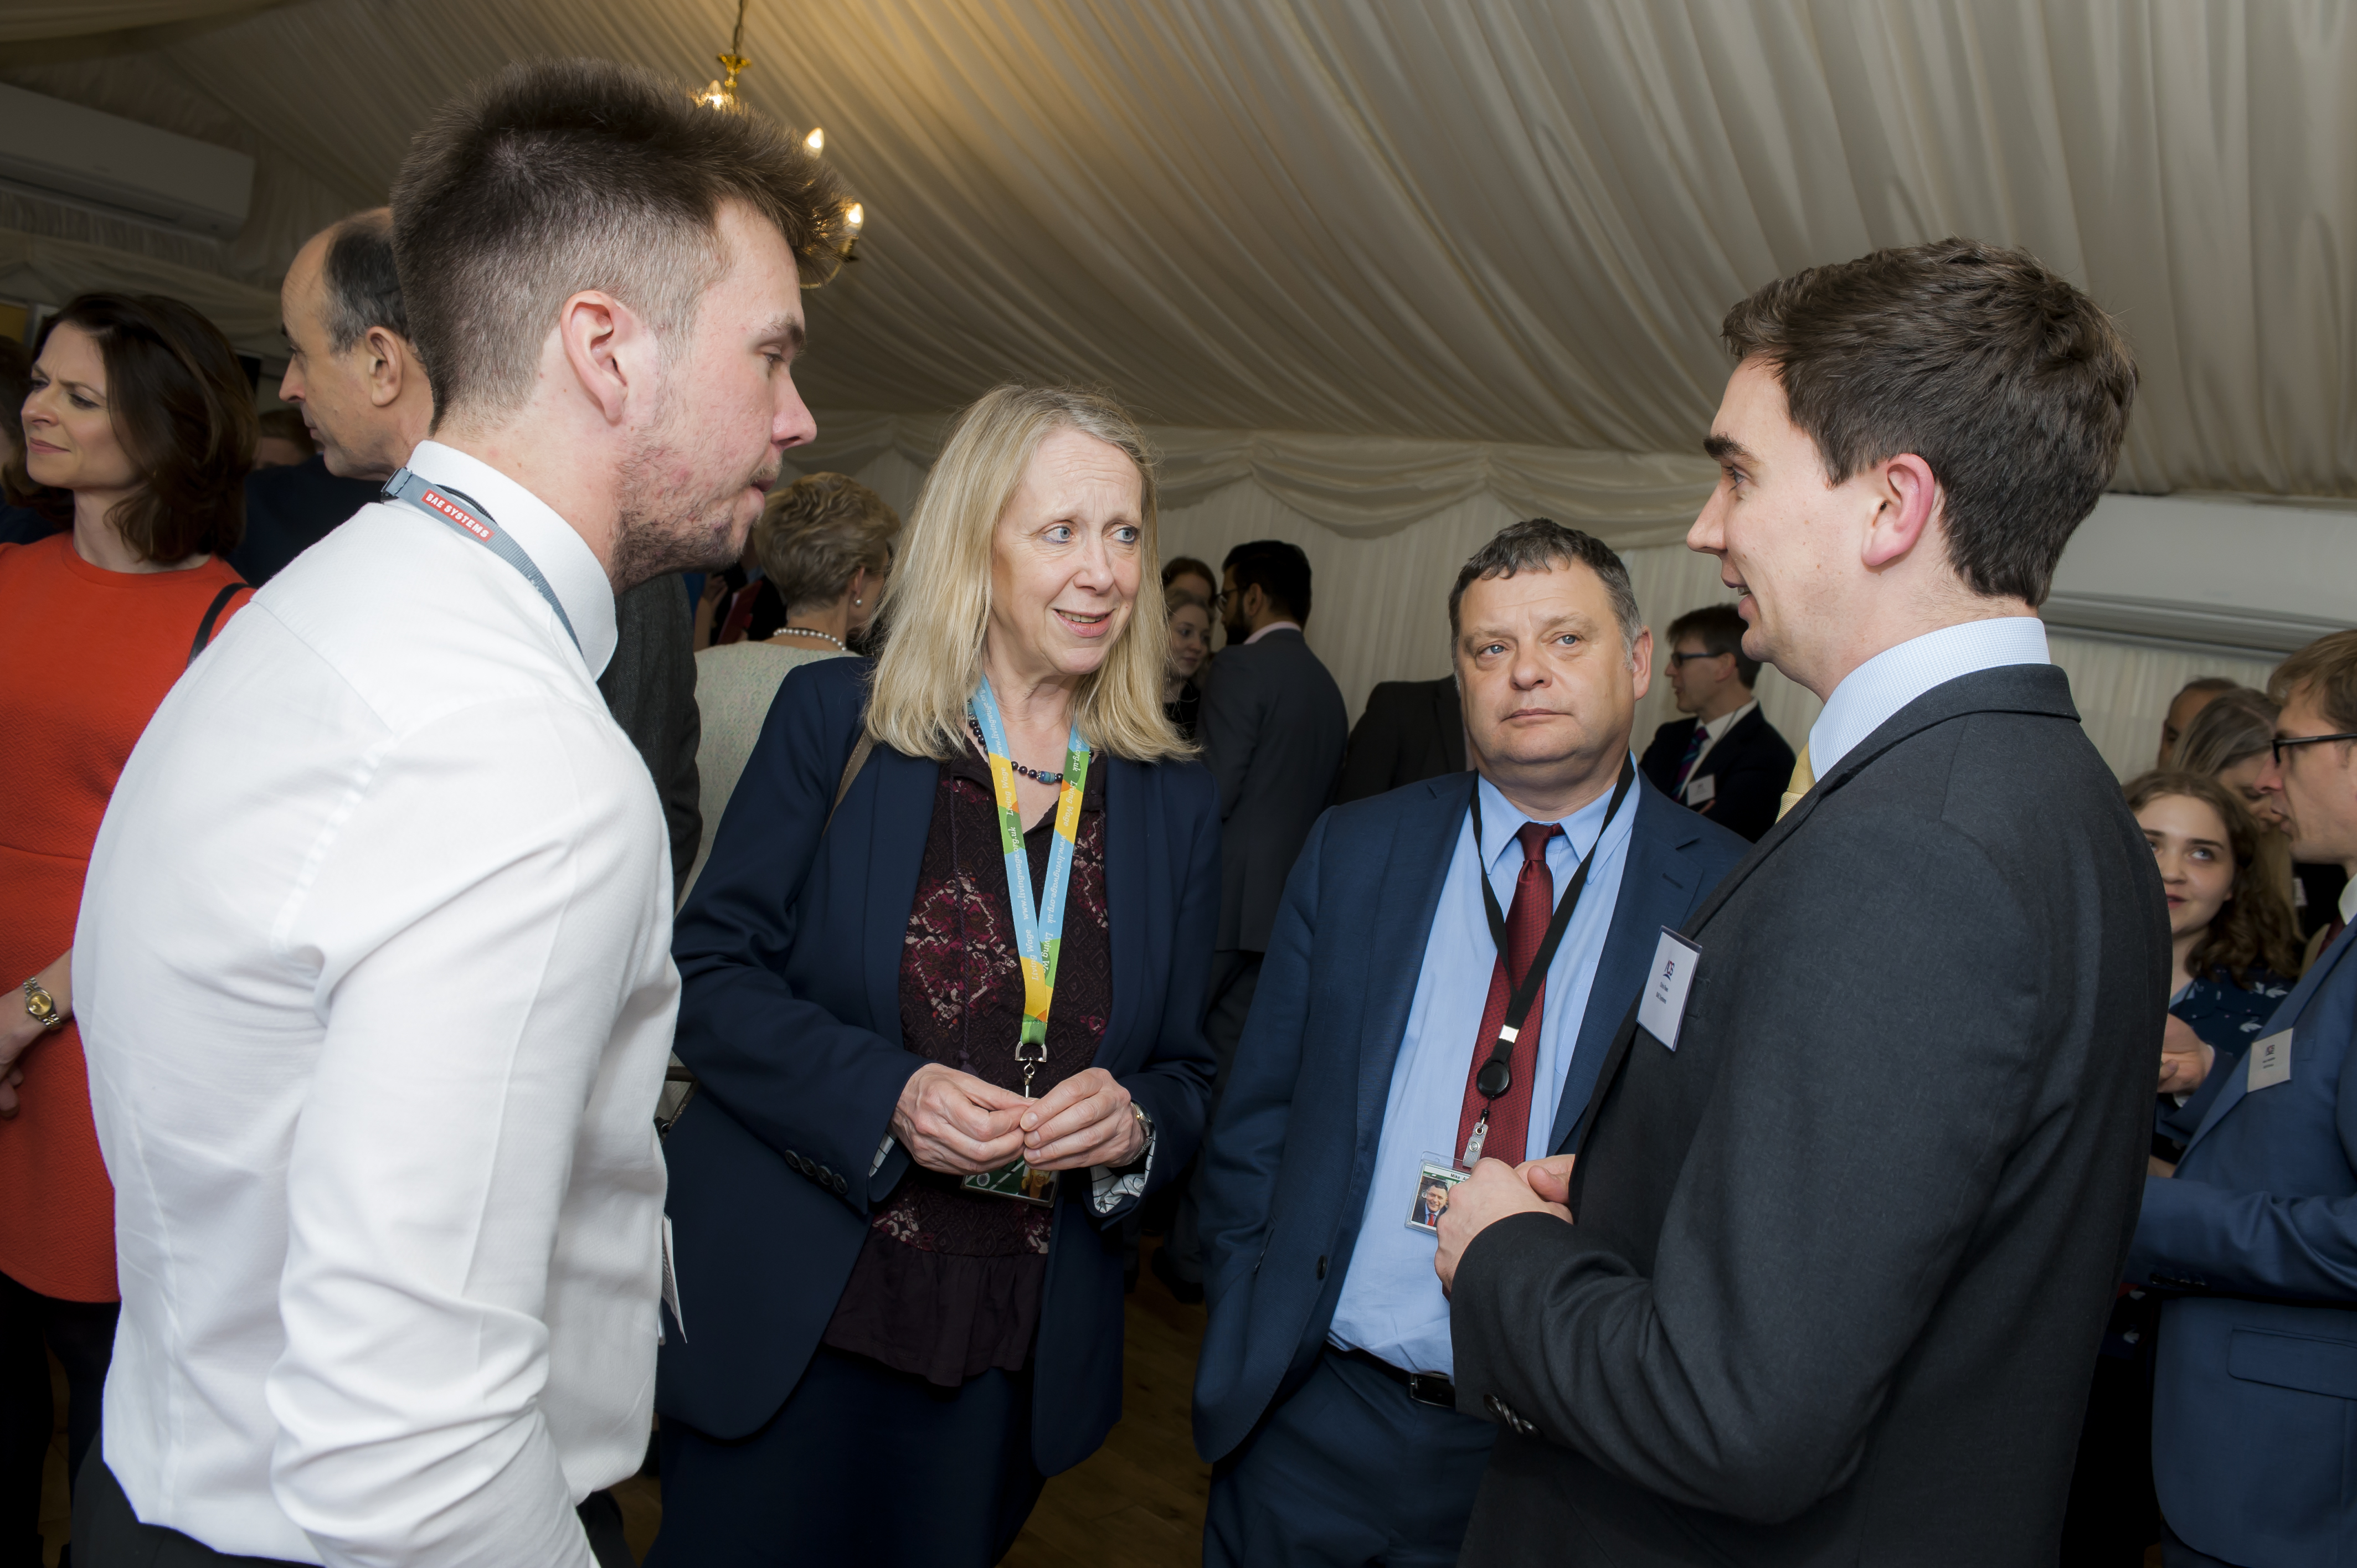 Liz_McInnes_MP_welcomes_young_apprentices_to_parliament.jpg